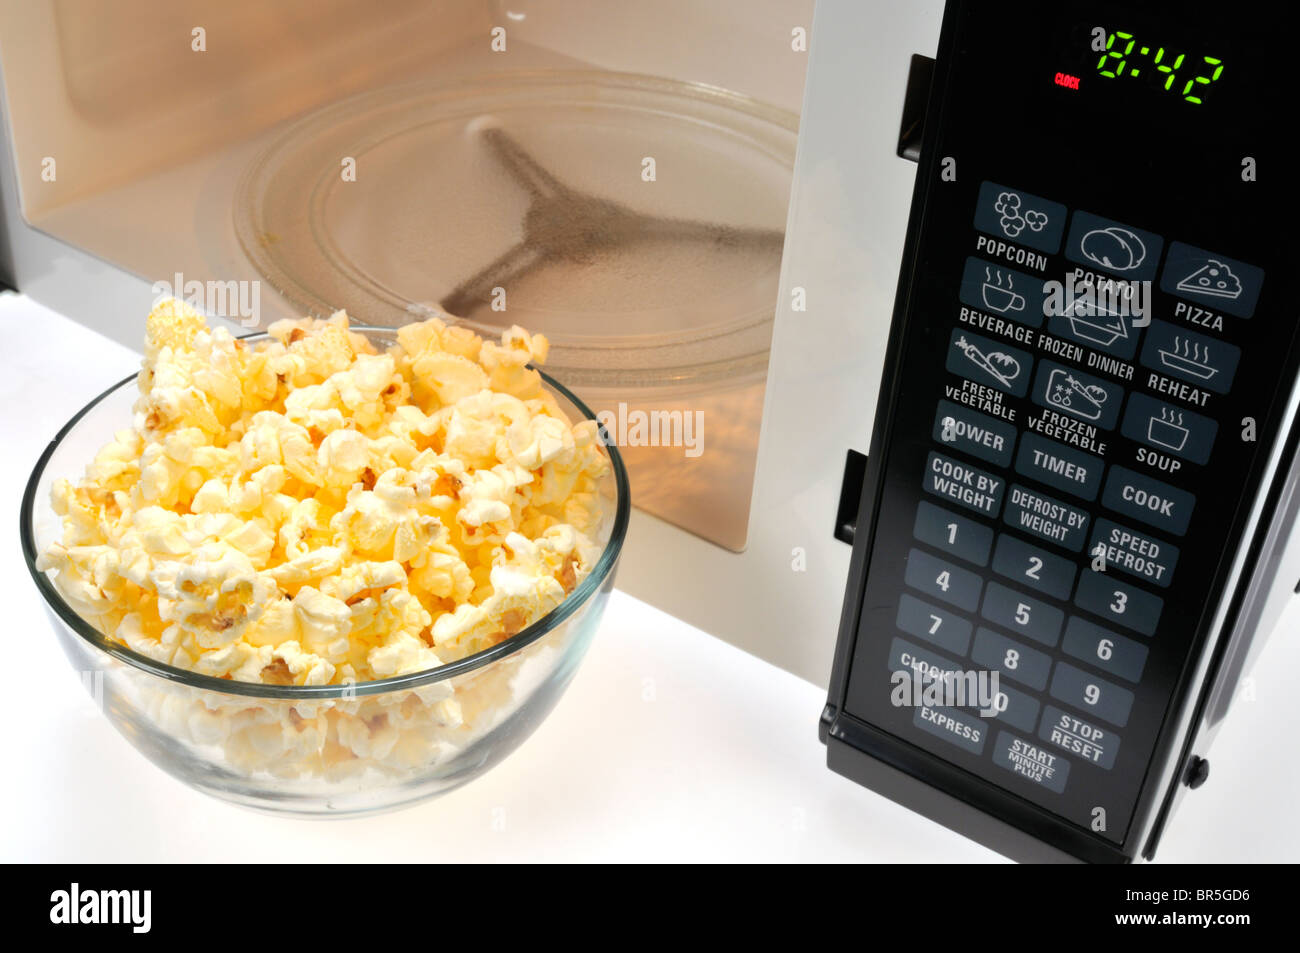 https www alamy com stock photo glass bowl of cooked microwave popcorn in front of microwave 31470130 html